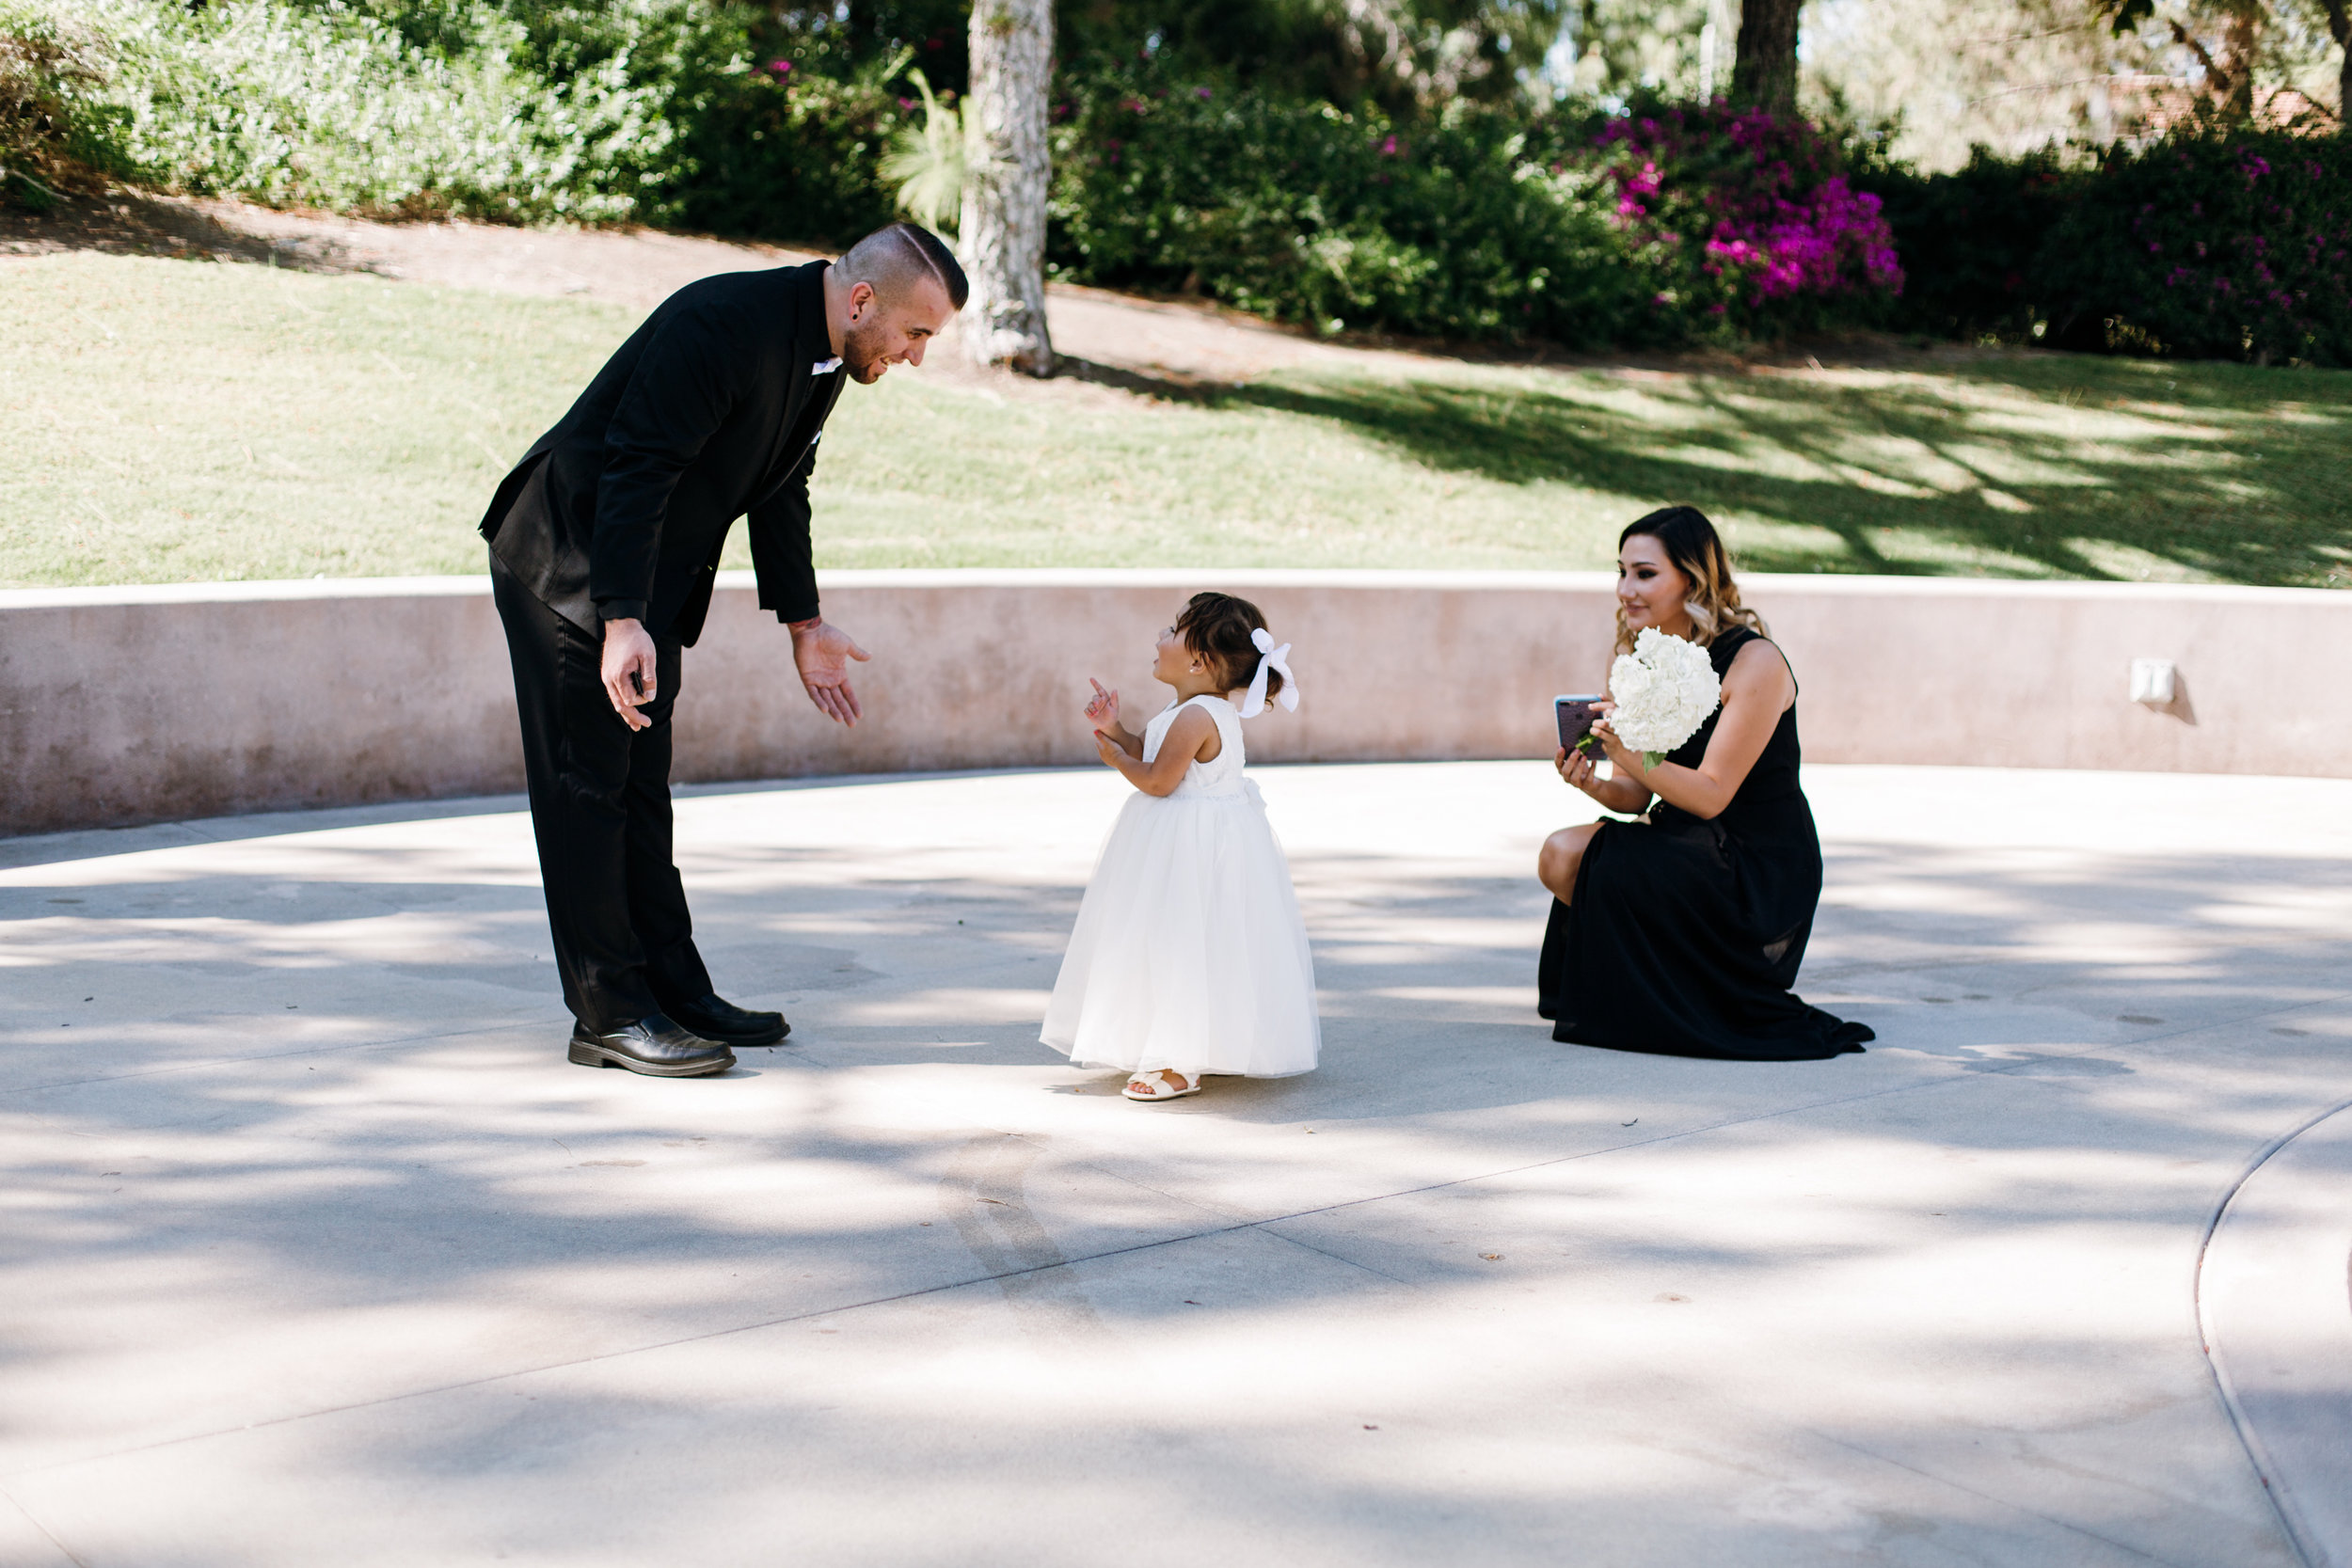 KaraNixonWeddings-CoyoteHillsGolf-Fullerton-Wedding-31.jpg